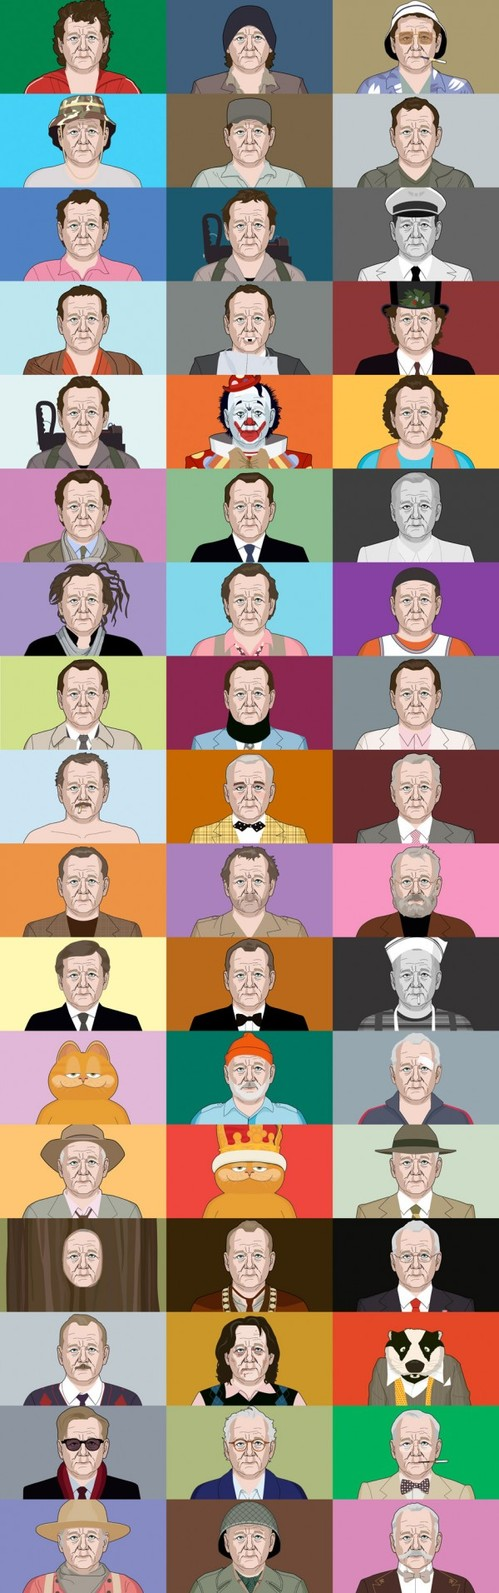 Steve-Murrays-The-Many-Faces-of-Bill-Murray-1-600x1912.jpg